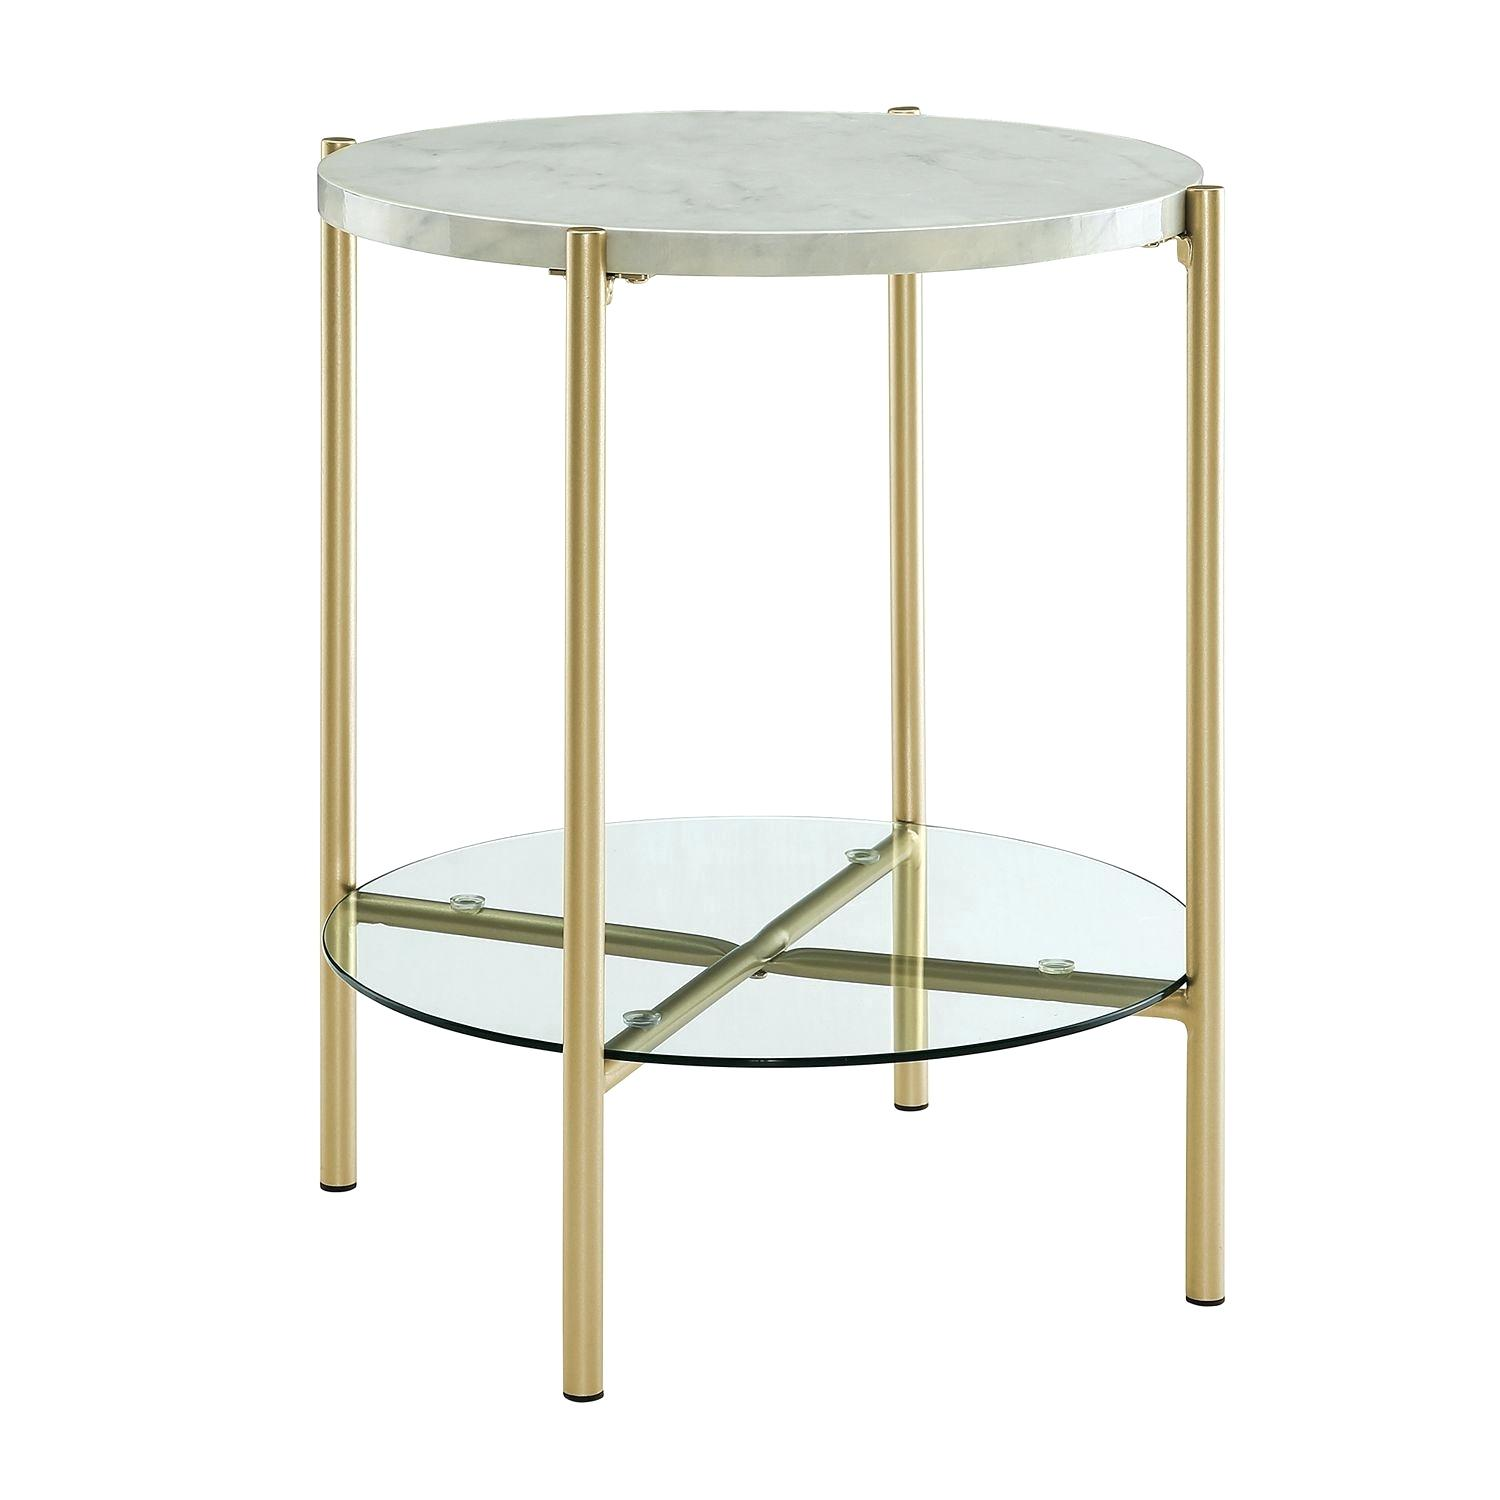 marble gold side table wearemark round white faux with glass shelf pier imports top rose mosaic accent outdoor inch wide pub dining set one wall decor pottery barn coffee little